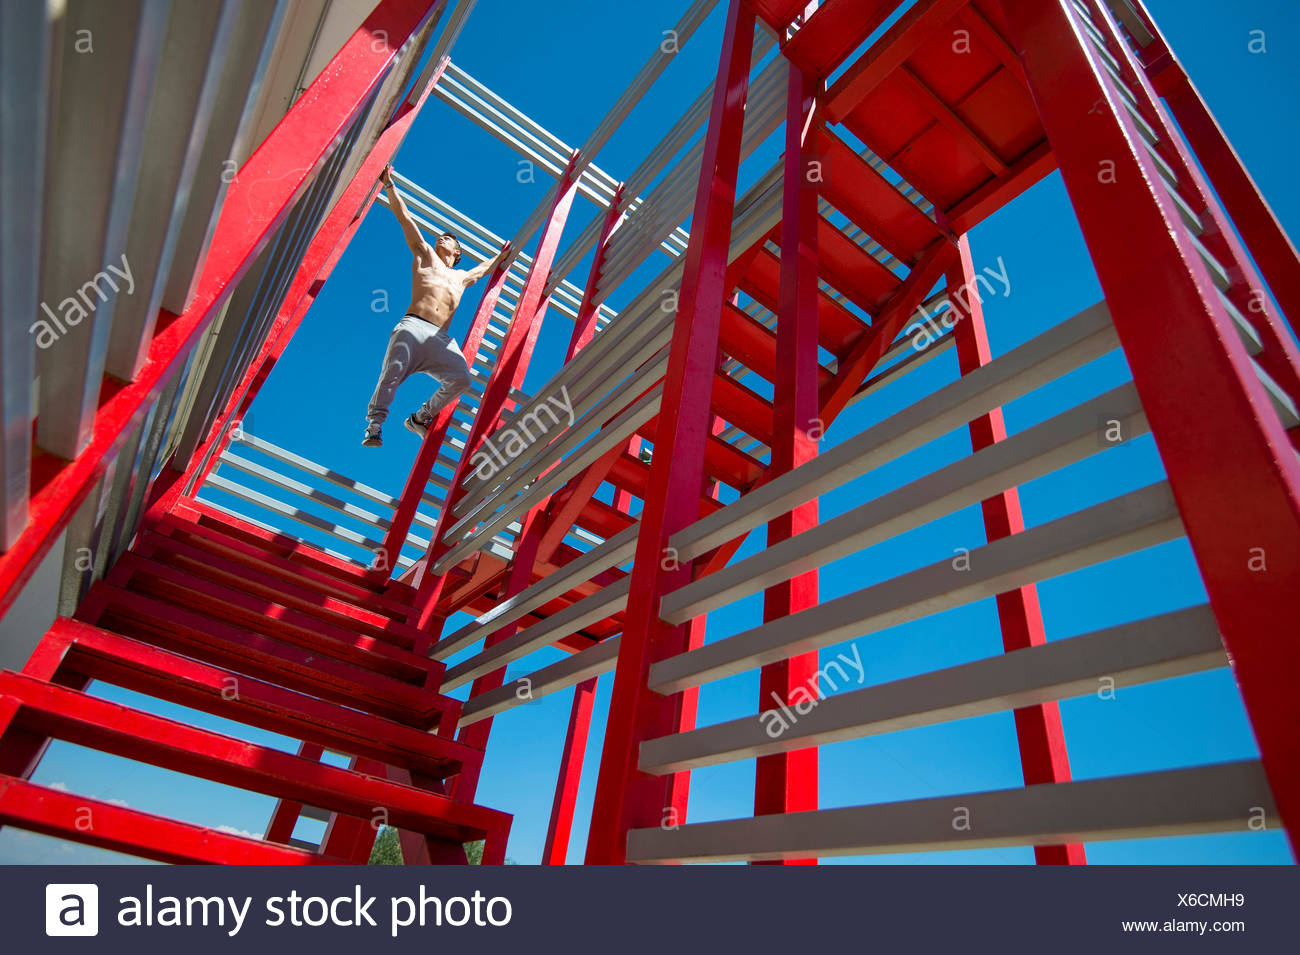 Chase Armitage free running on a red metal structure. - Stock Image